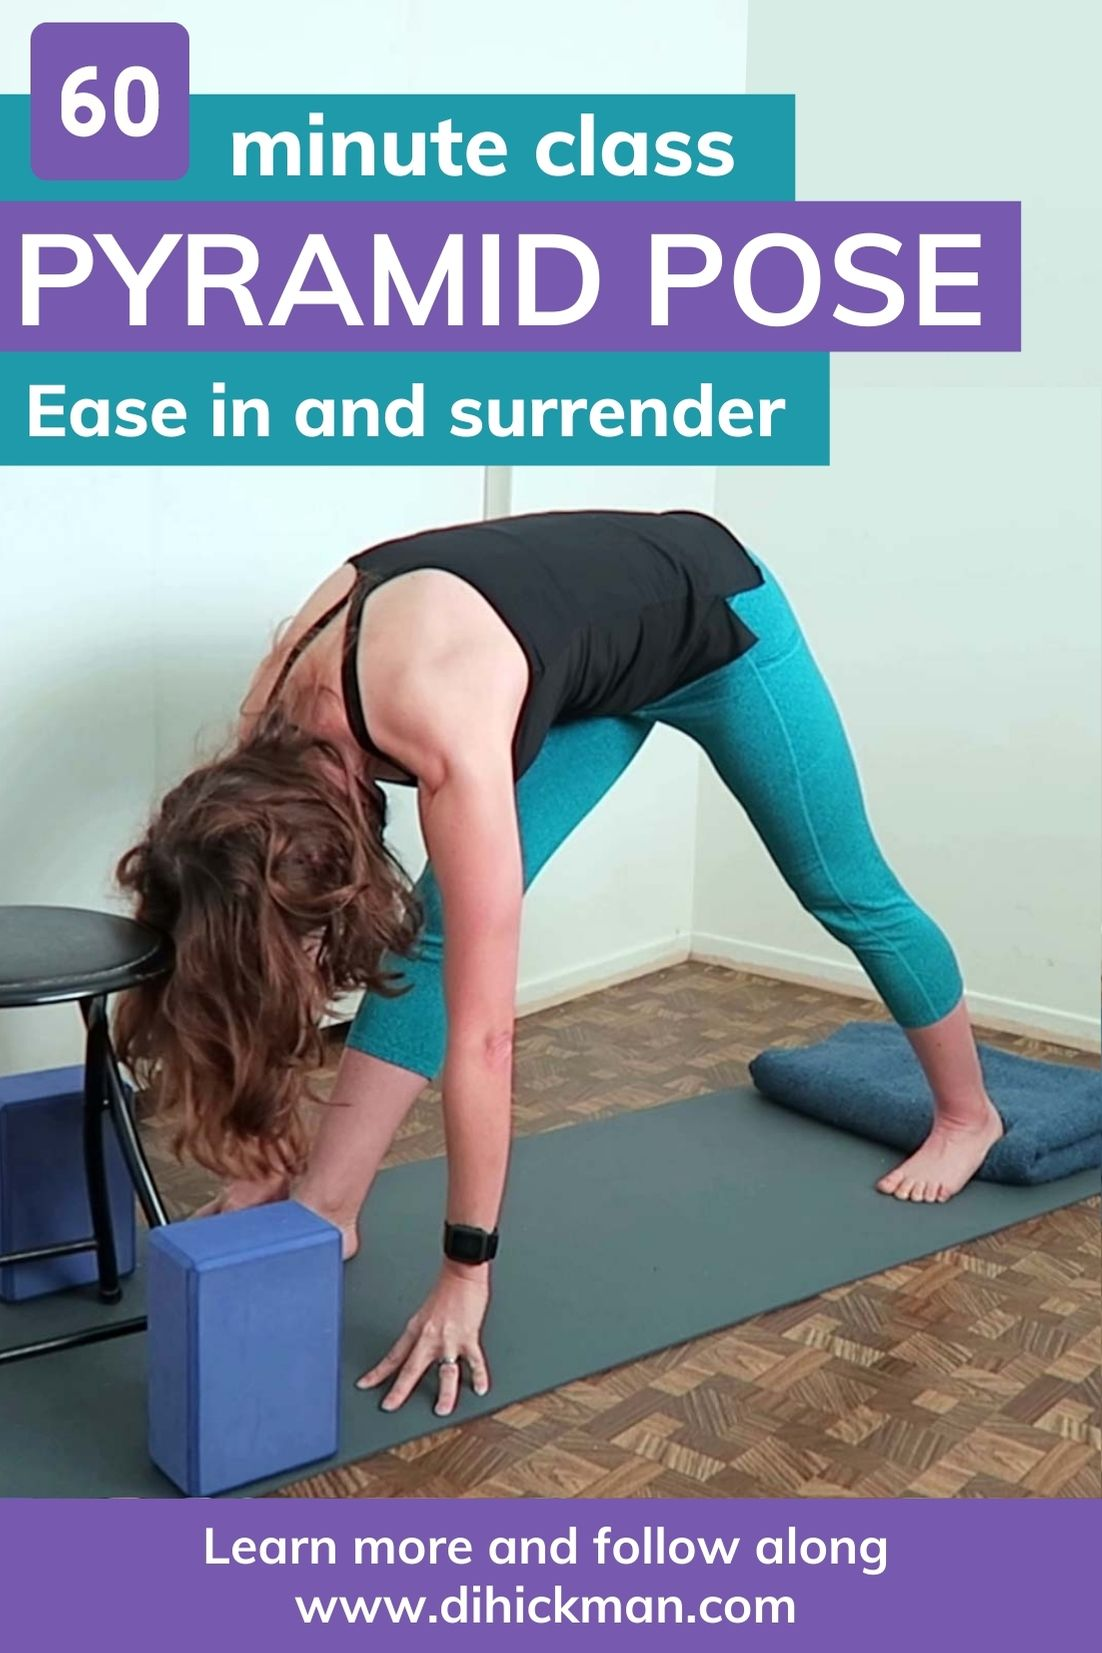 60 minute class pyramid pose. Ease in and surrender